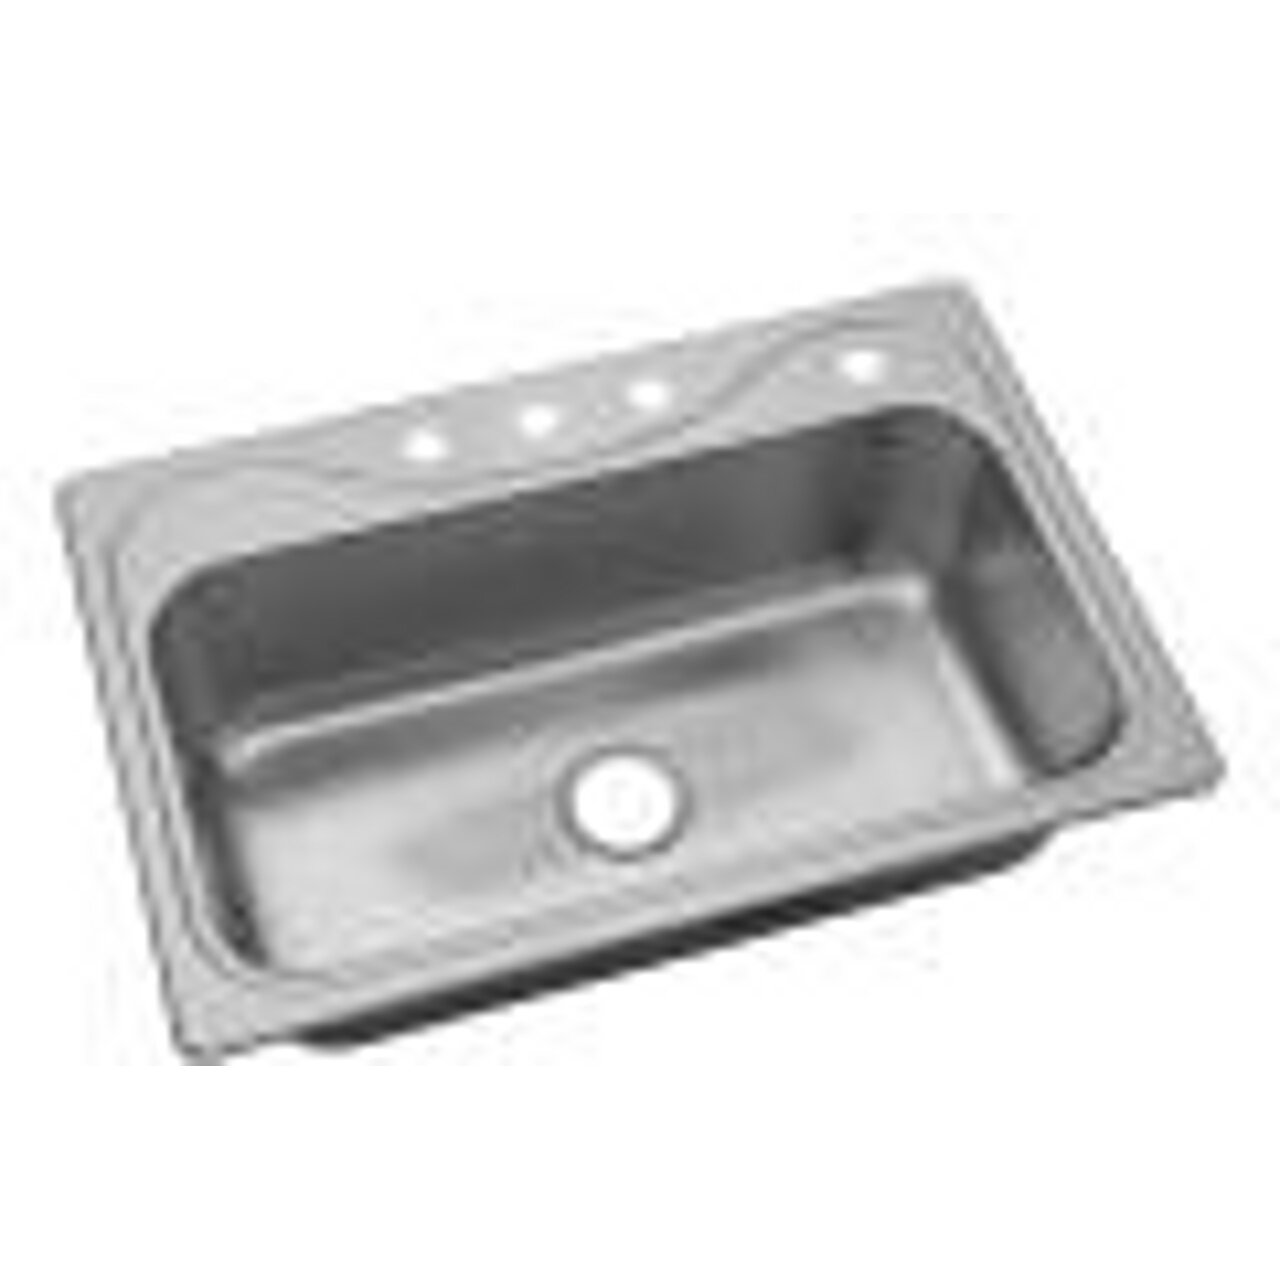 Marys Dressing Reviews Top Selection Of Bowl Sinks For 2014